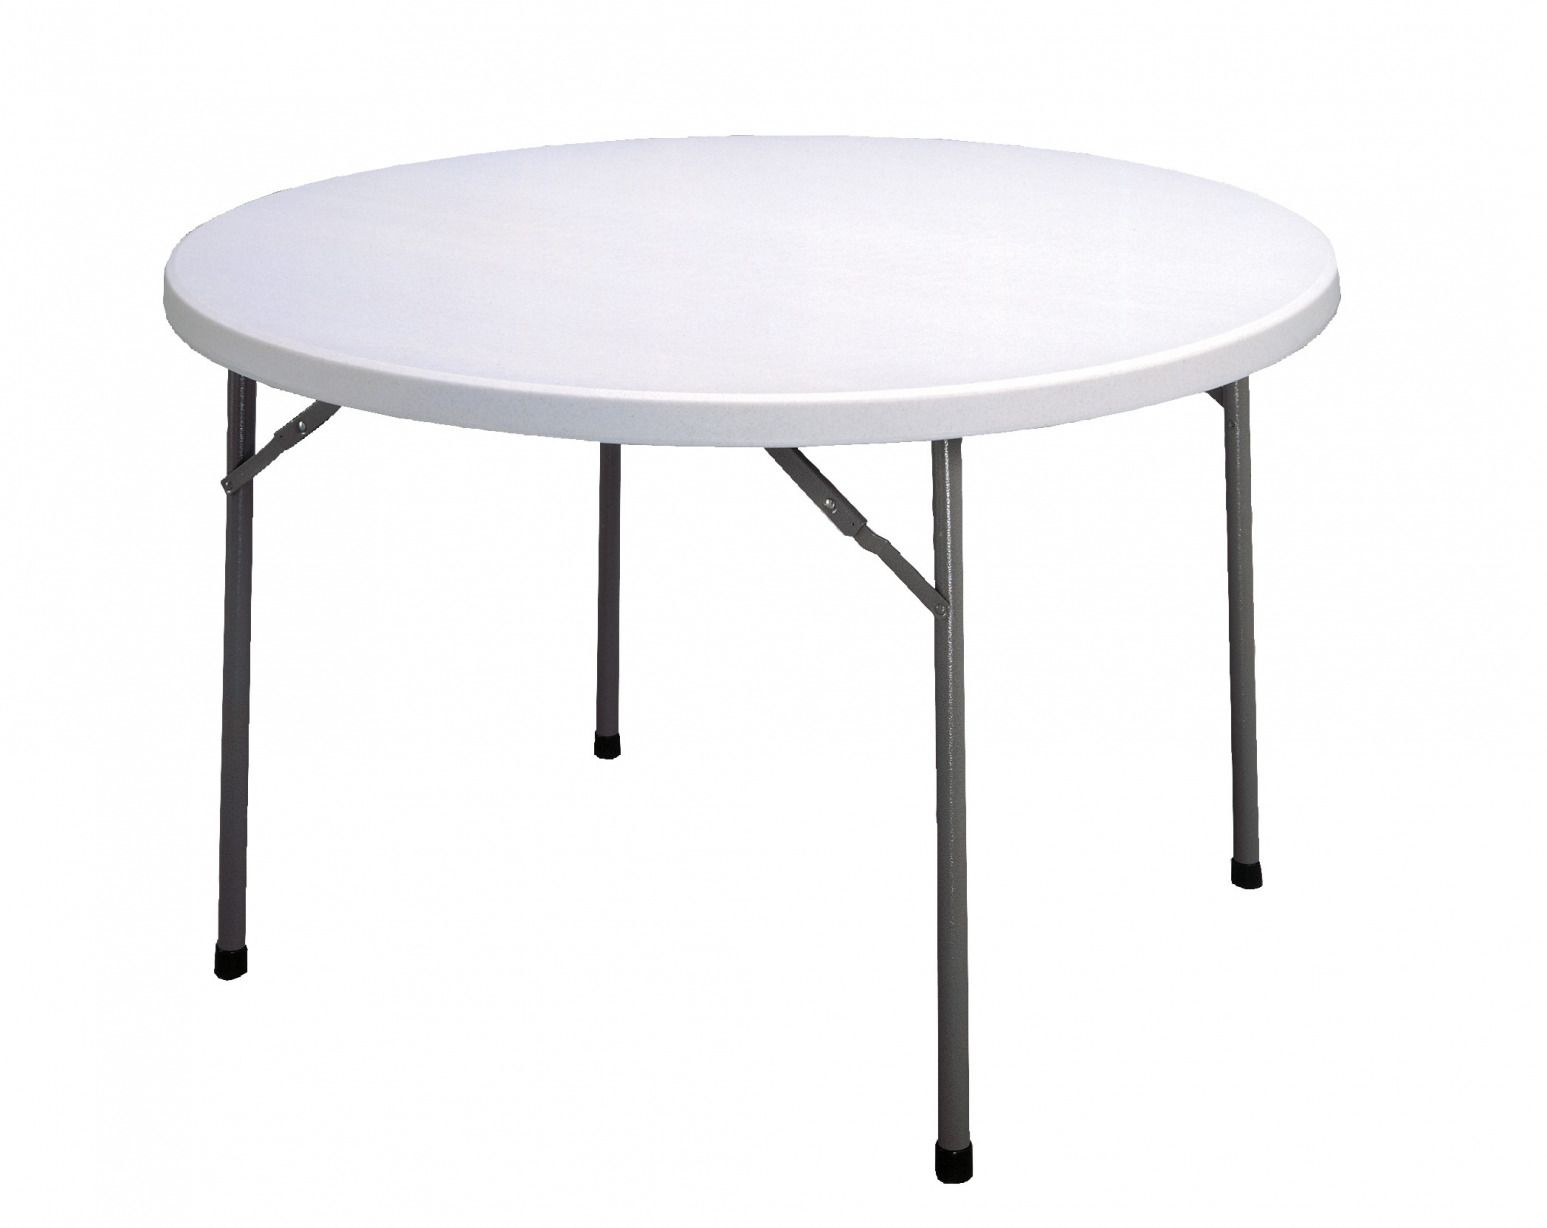 100 48 Round Folding Table Costco Best Paint For Furniture Check More At Http